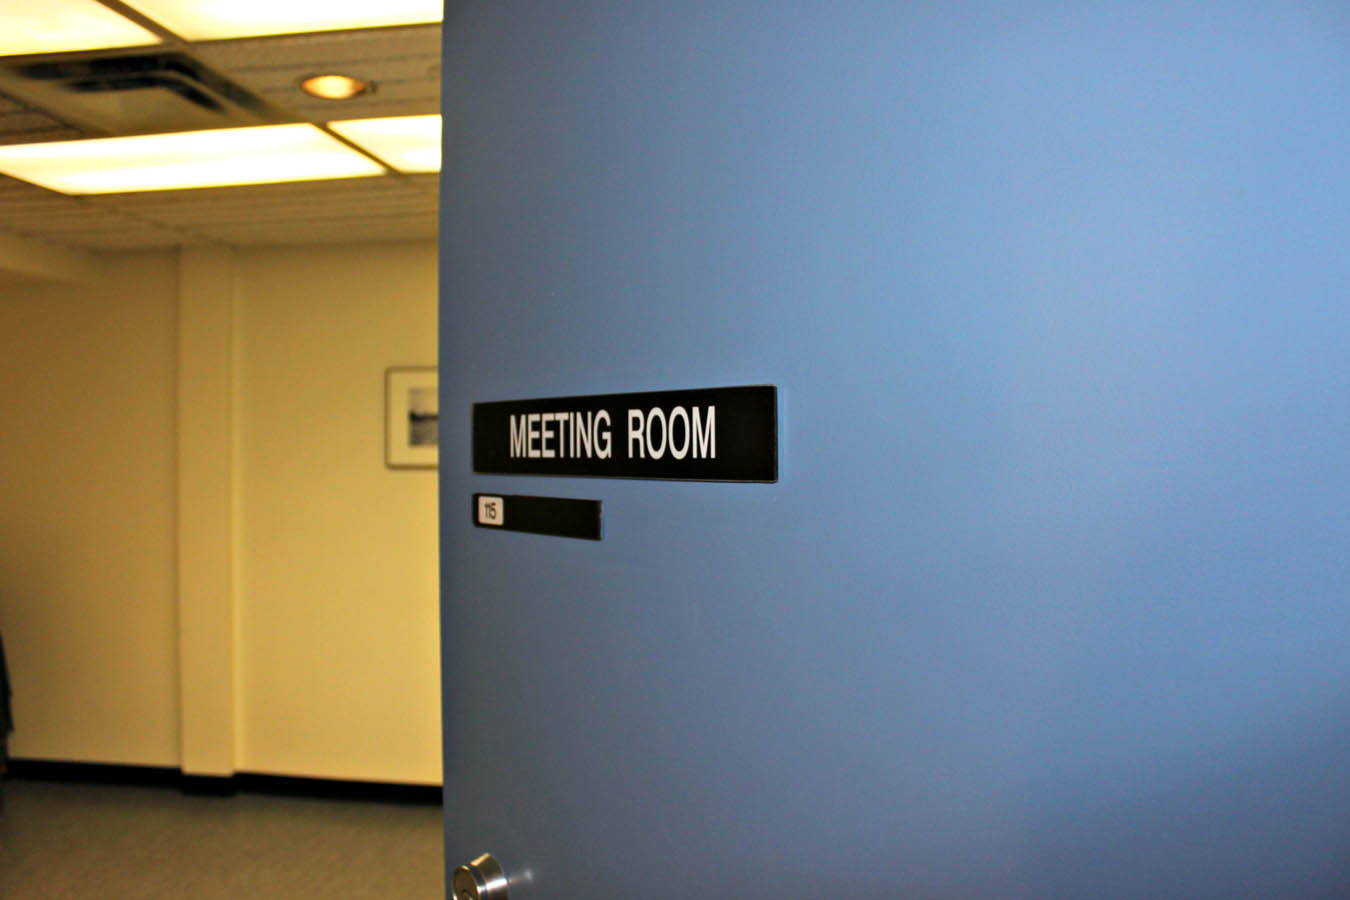 Kitsilano Community Centre Meeting Room